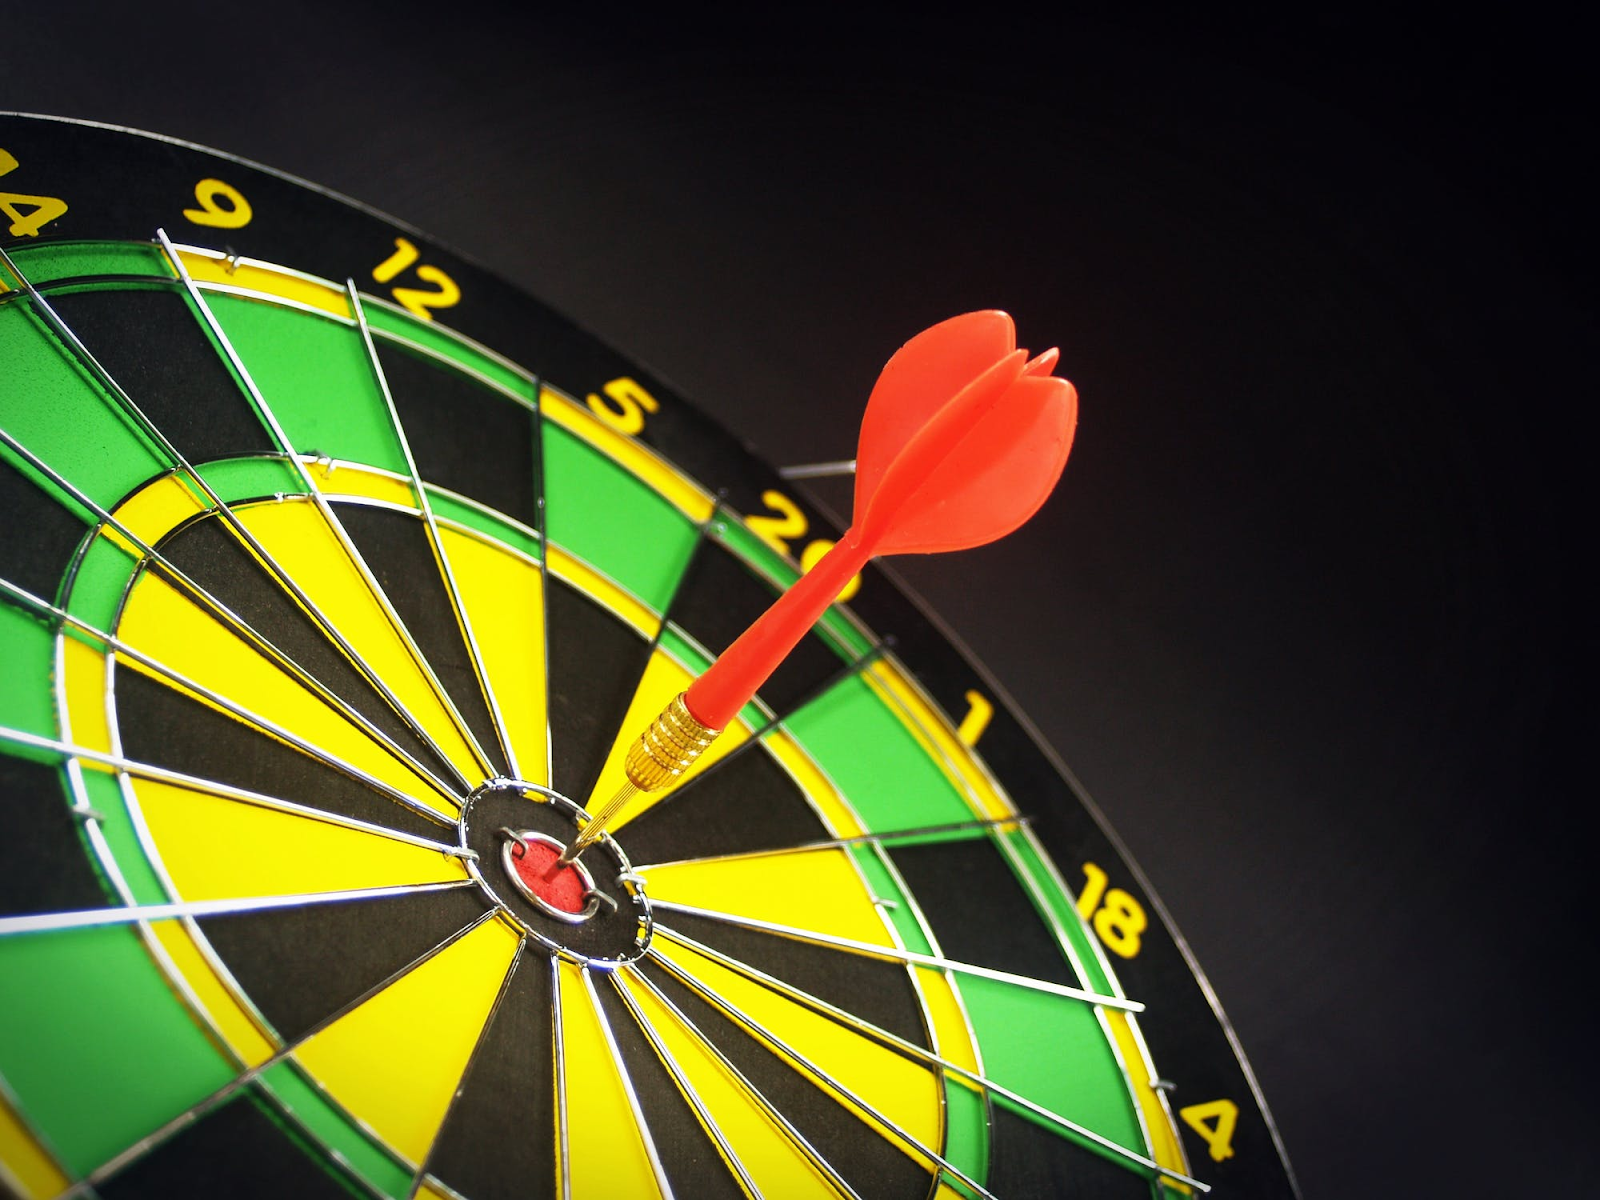 finding your target is like finding new customers